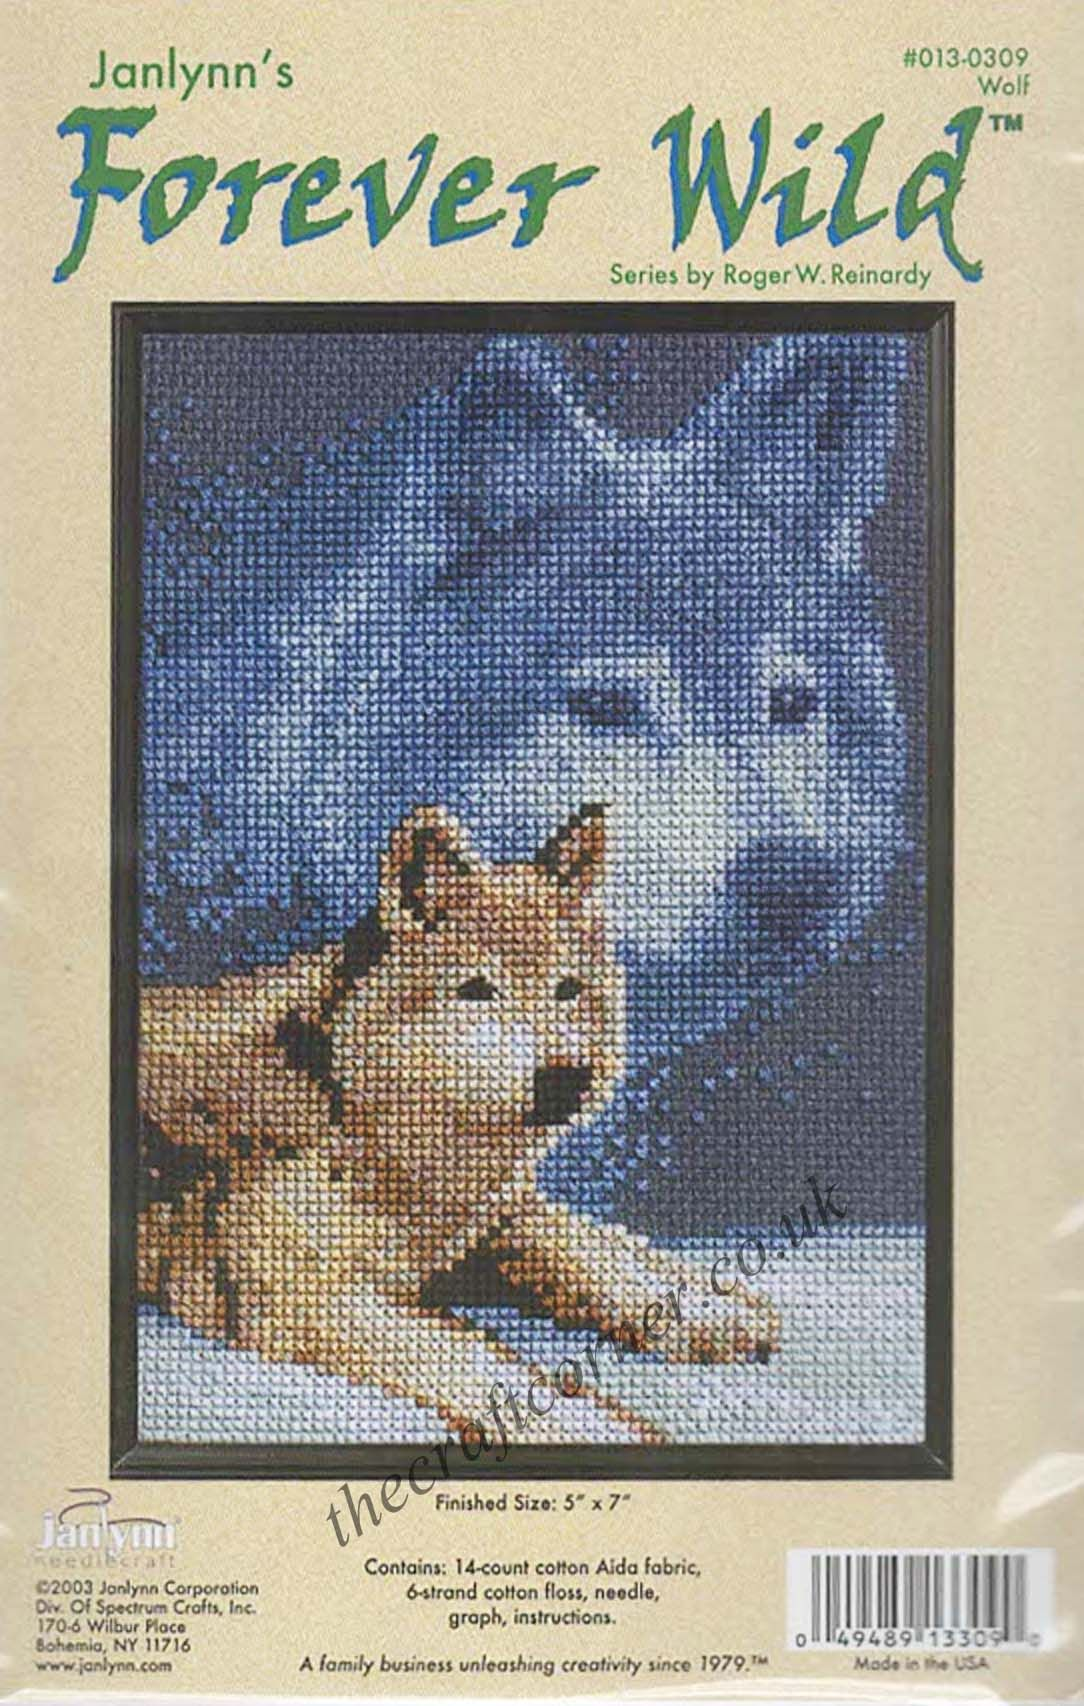 Wolf Counted Cross Stitch Kit From The Janlynn Forever